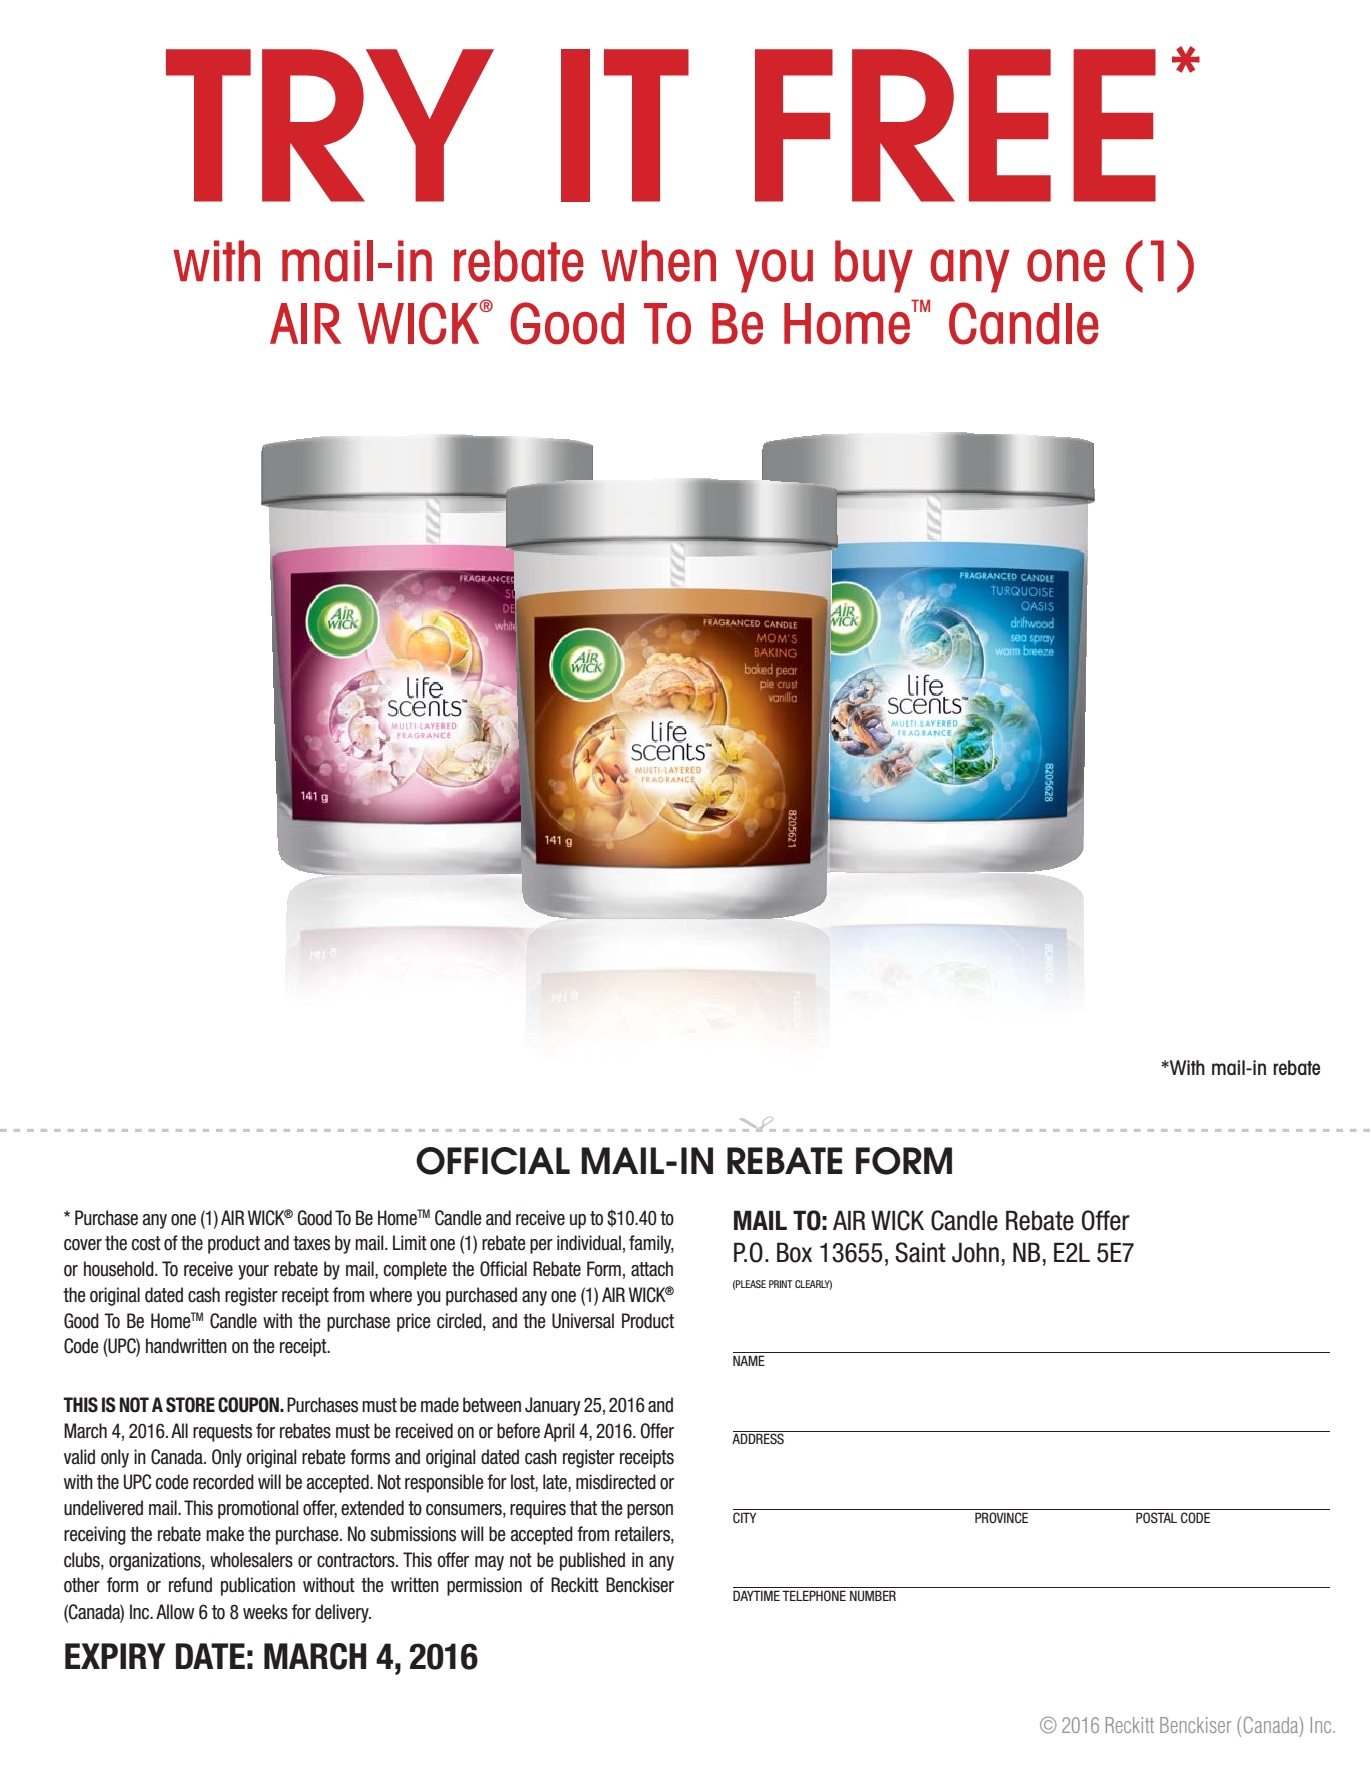 graphic about Airwick Printable Coupons called Air wick candle discount coupons - James allen coupon code 2018